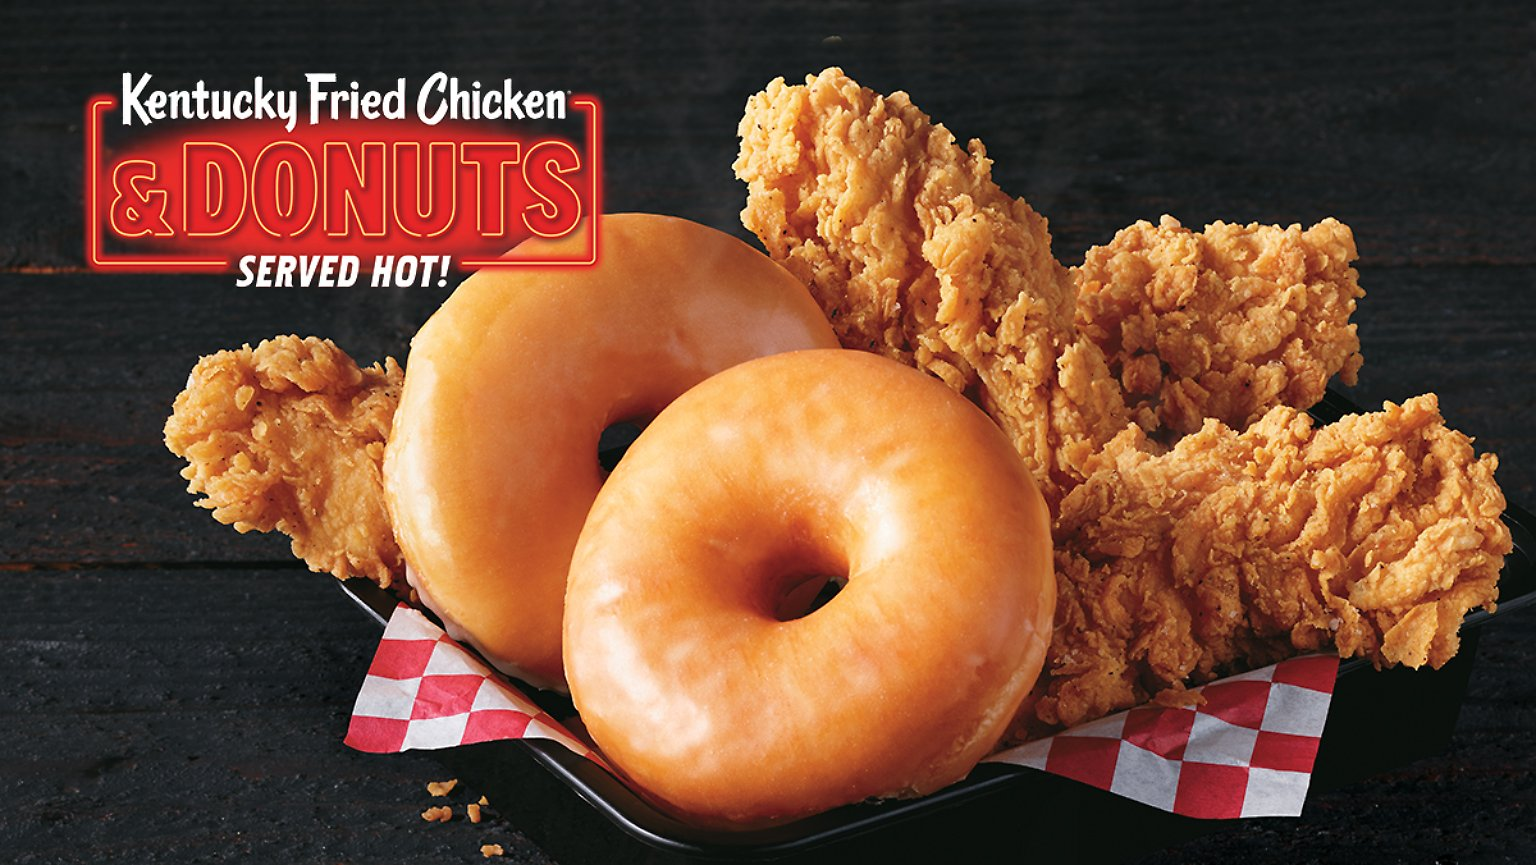 KFC's chicken and donut basket meal